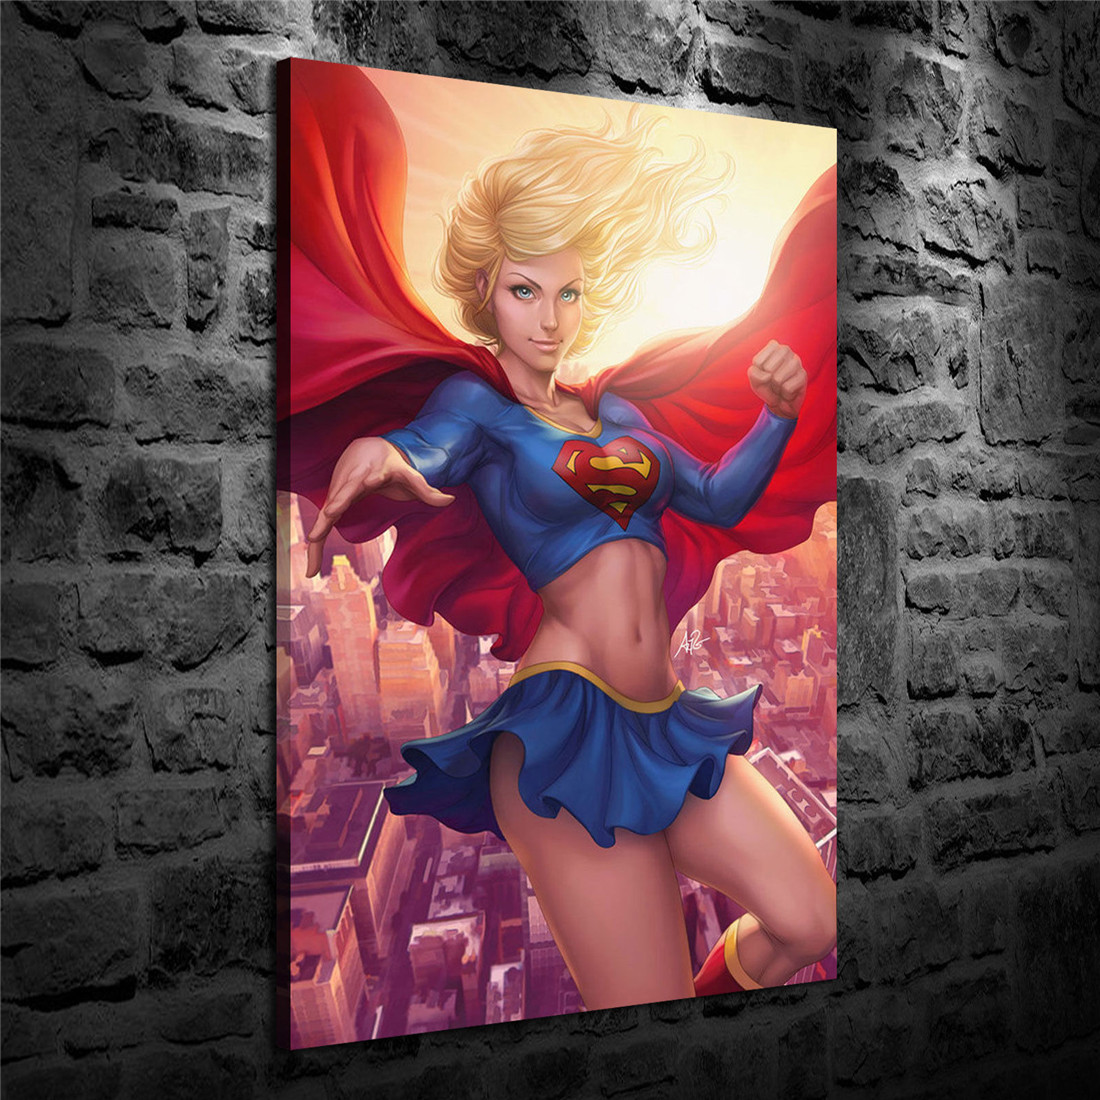 HD Print Oil Painting Home Decor Art on Canvas Batgirl Issue 12x18inch Unframed